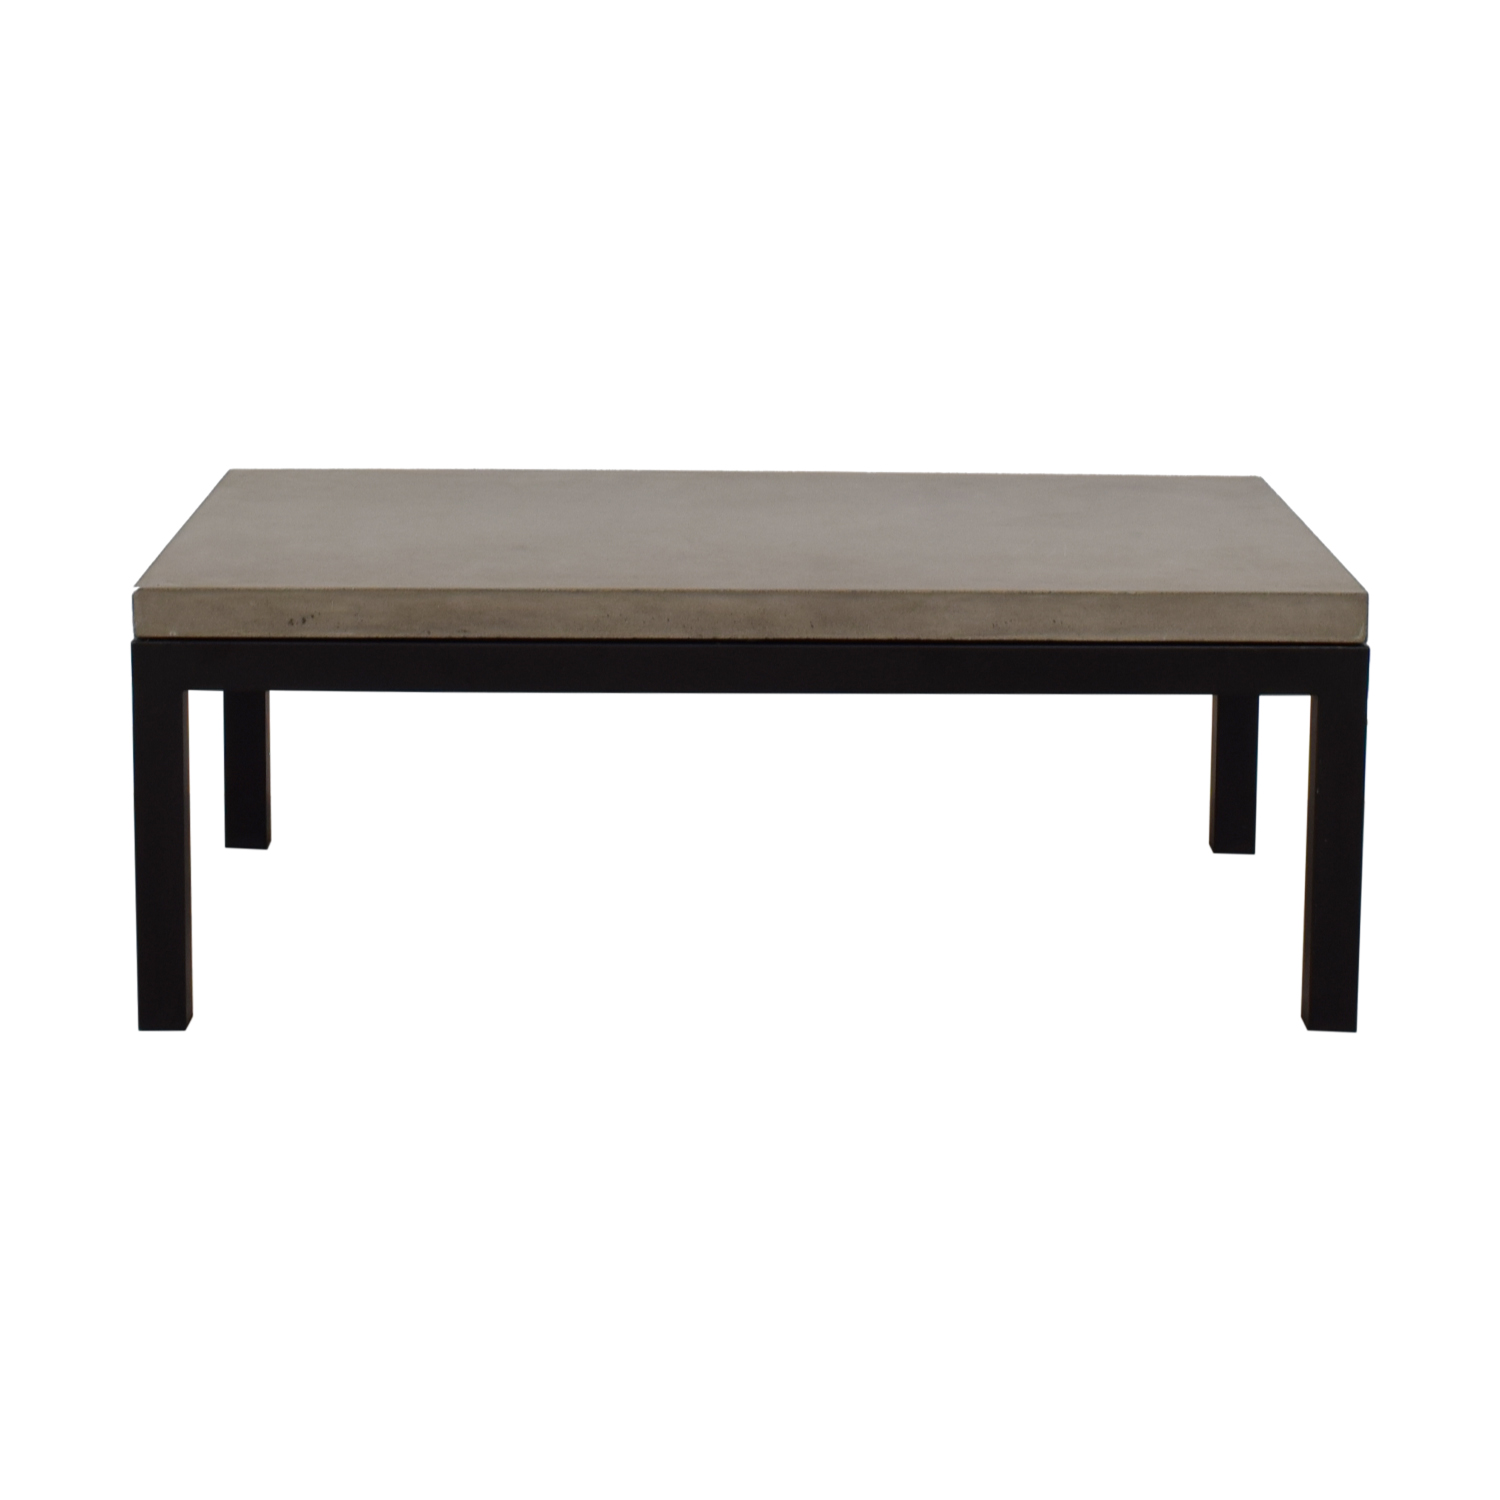 OFF Crate Barrel Crate Barrel Parsons Concrete Top Dark - Rectangular concrete coffee table